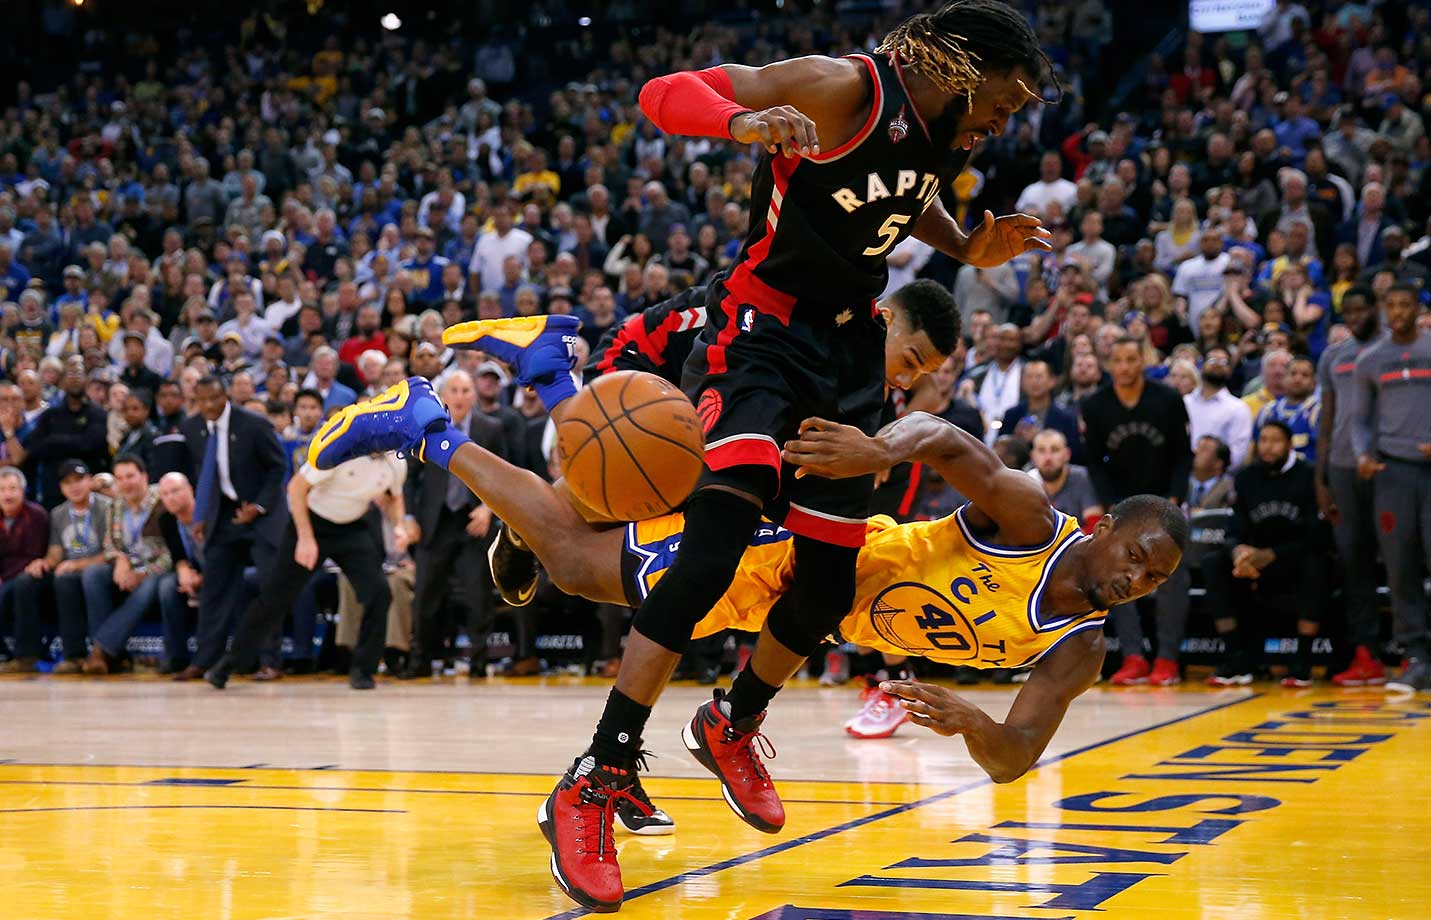 Harrison Barnes dives to save the ball from going out of bounds against Toronto in a game in which the Warriros donned their throwback The City uniforms for the first time in over eight years.